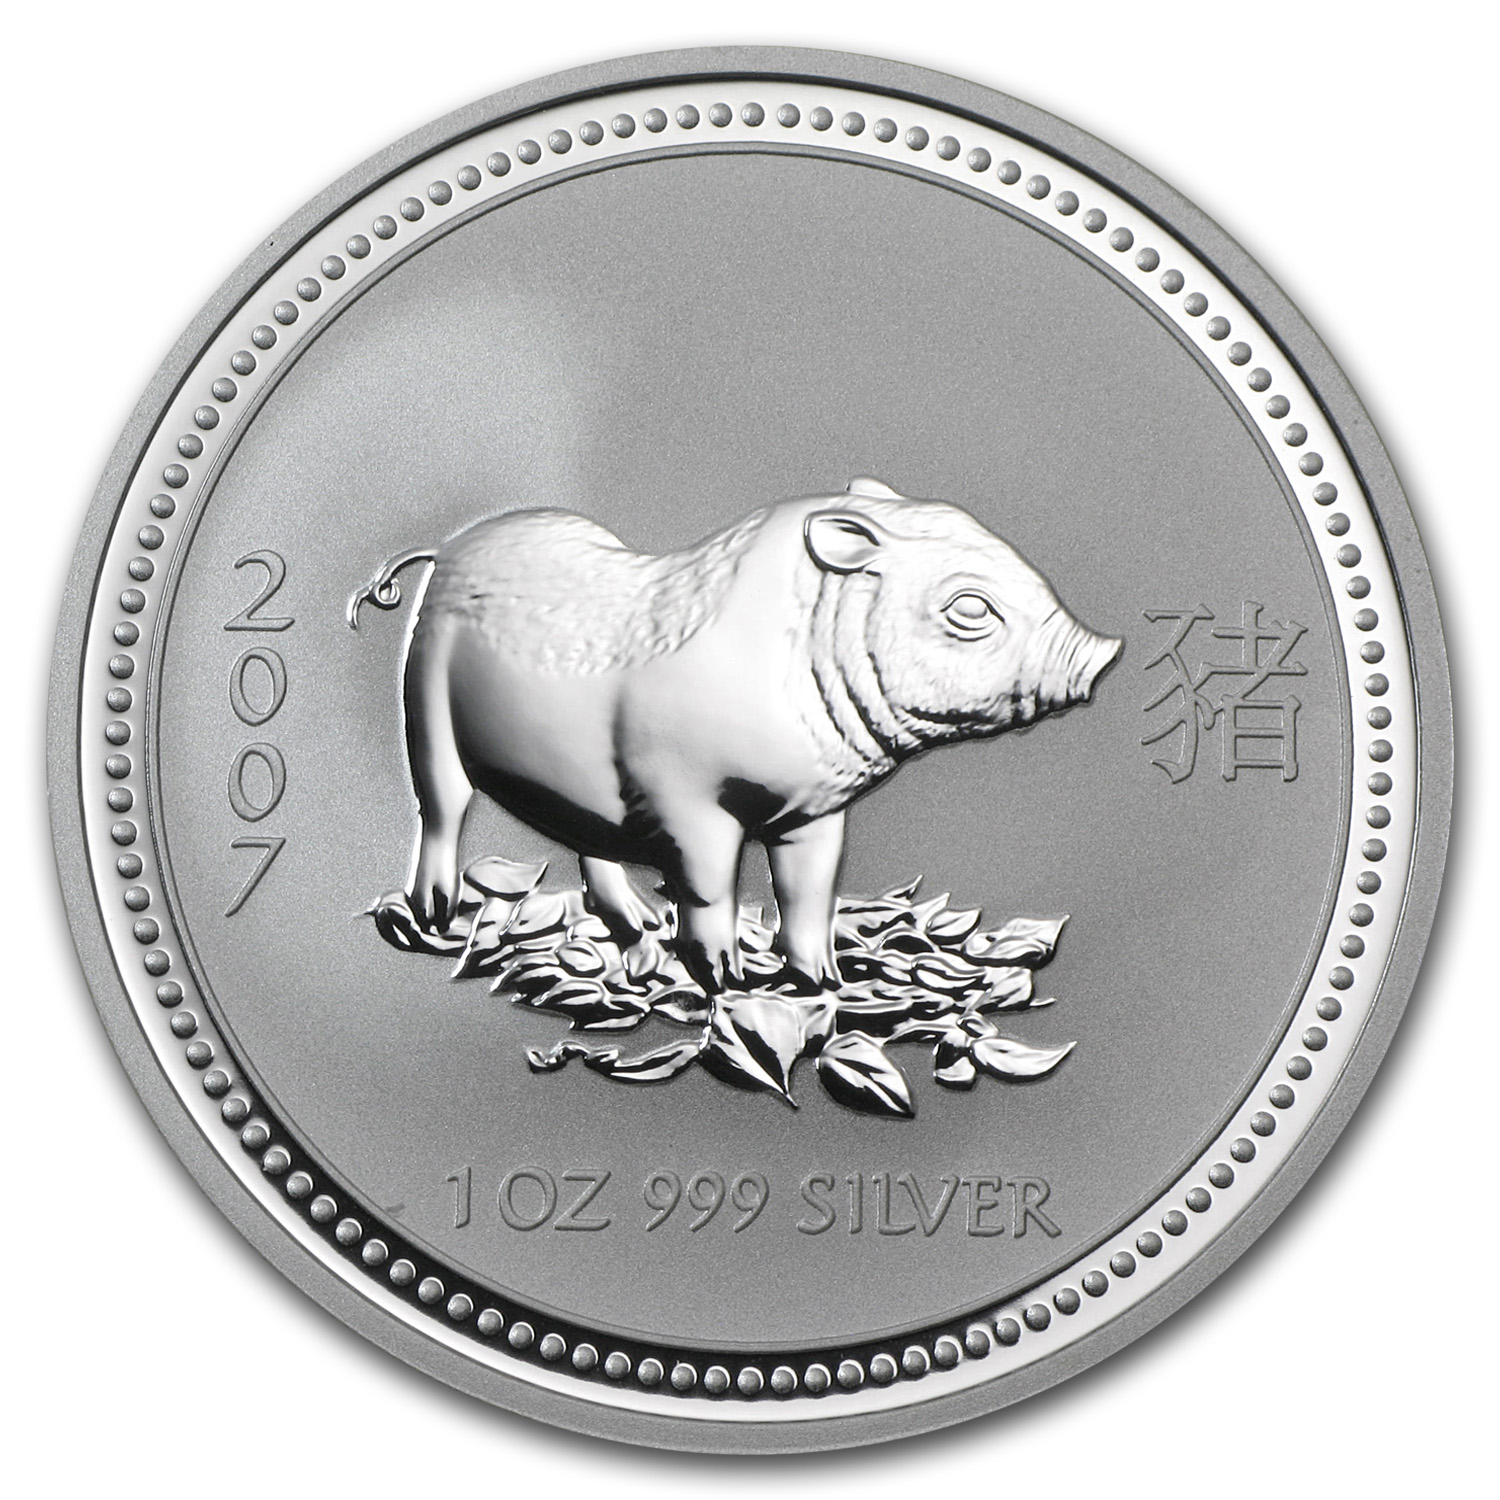 2007 1 oz Silver Lunar Year of the Pig (Series I)